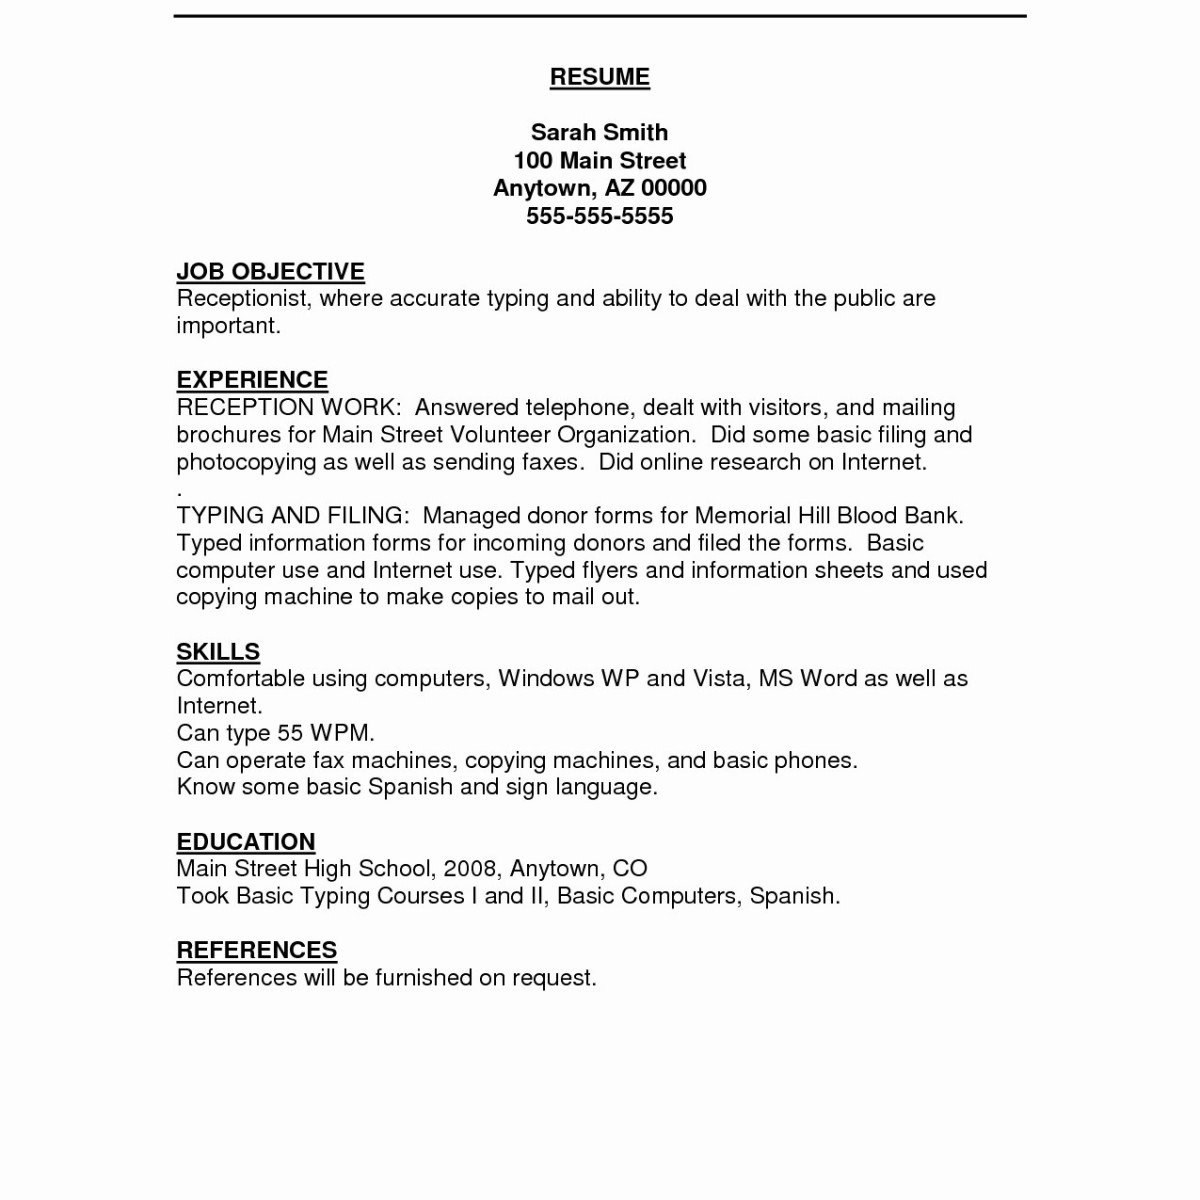 Resume Examples Online - Information Technology Resume Examples Cute Technical Resume